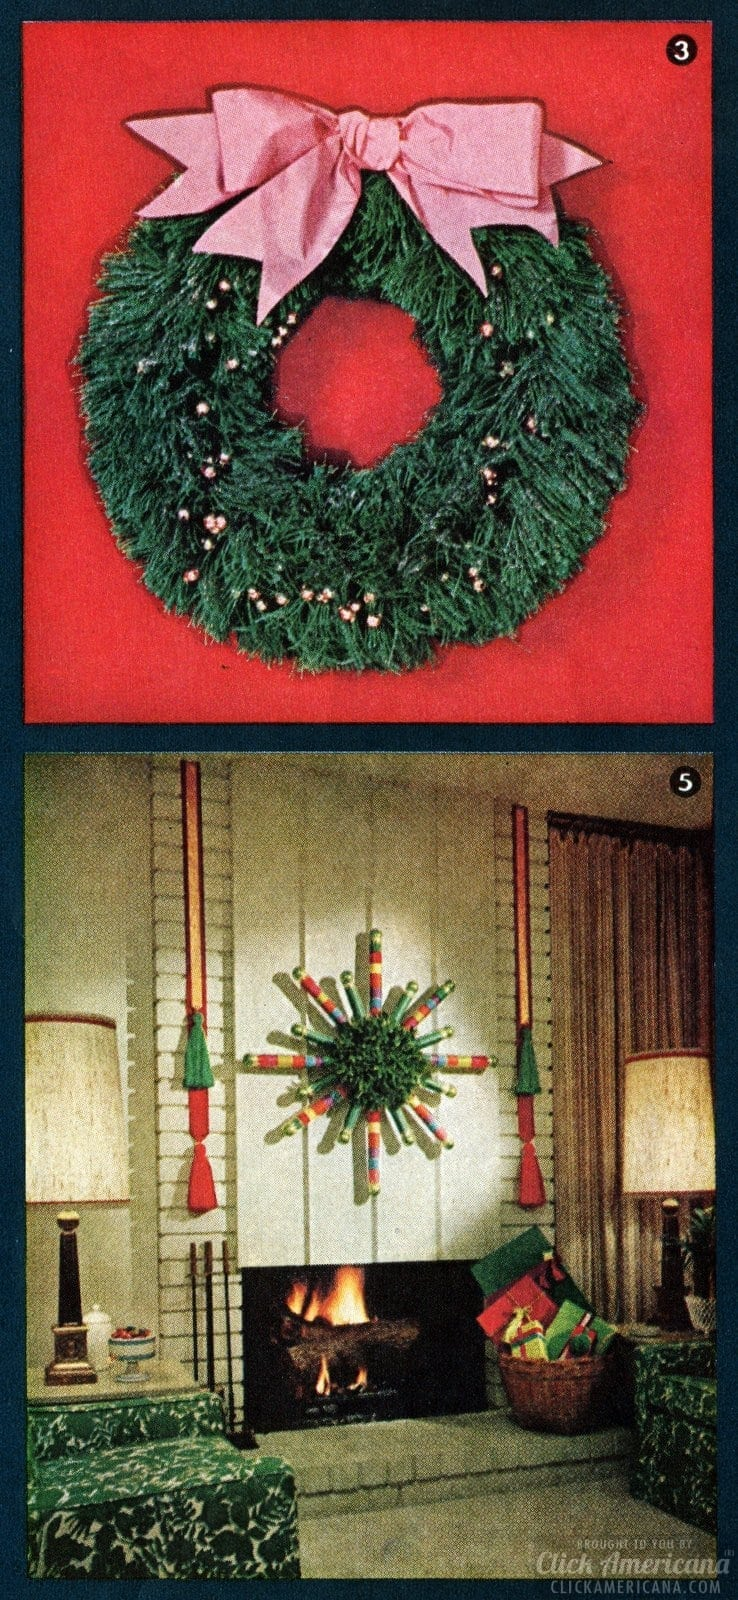 Retro holiday decor - Green burlap wreath craft and Cardboard starburst for Christmas